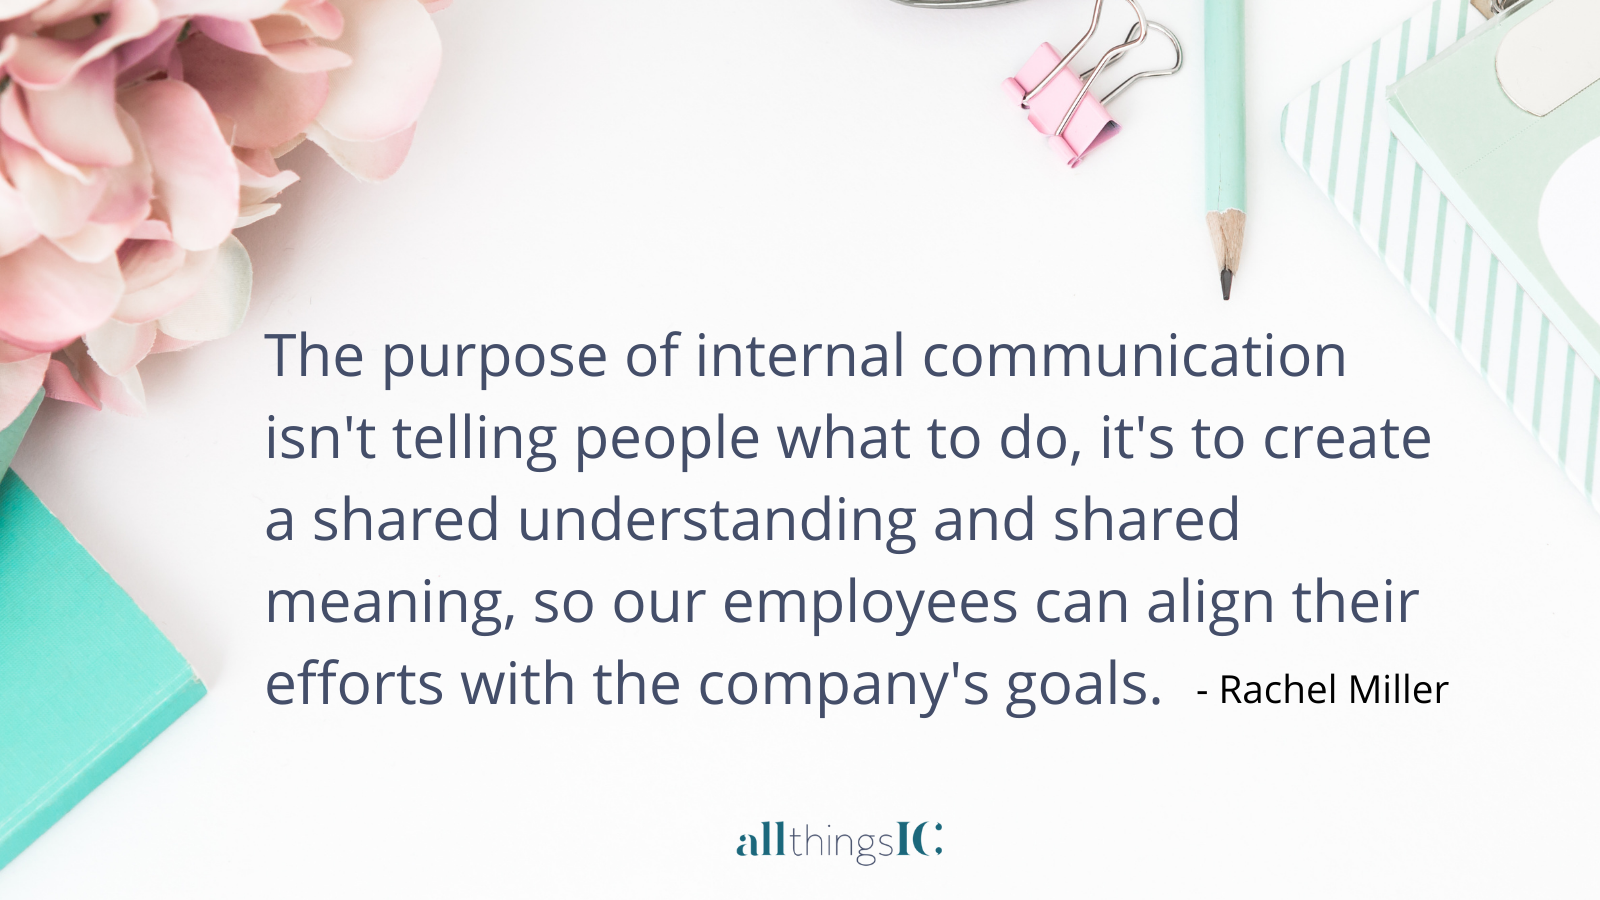 The purpose of internal communication isn't telling people what to do, it's to create a shared understanding and a shared meaning, so our employees can align their efforts with the company's goals and purpose.